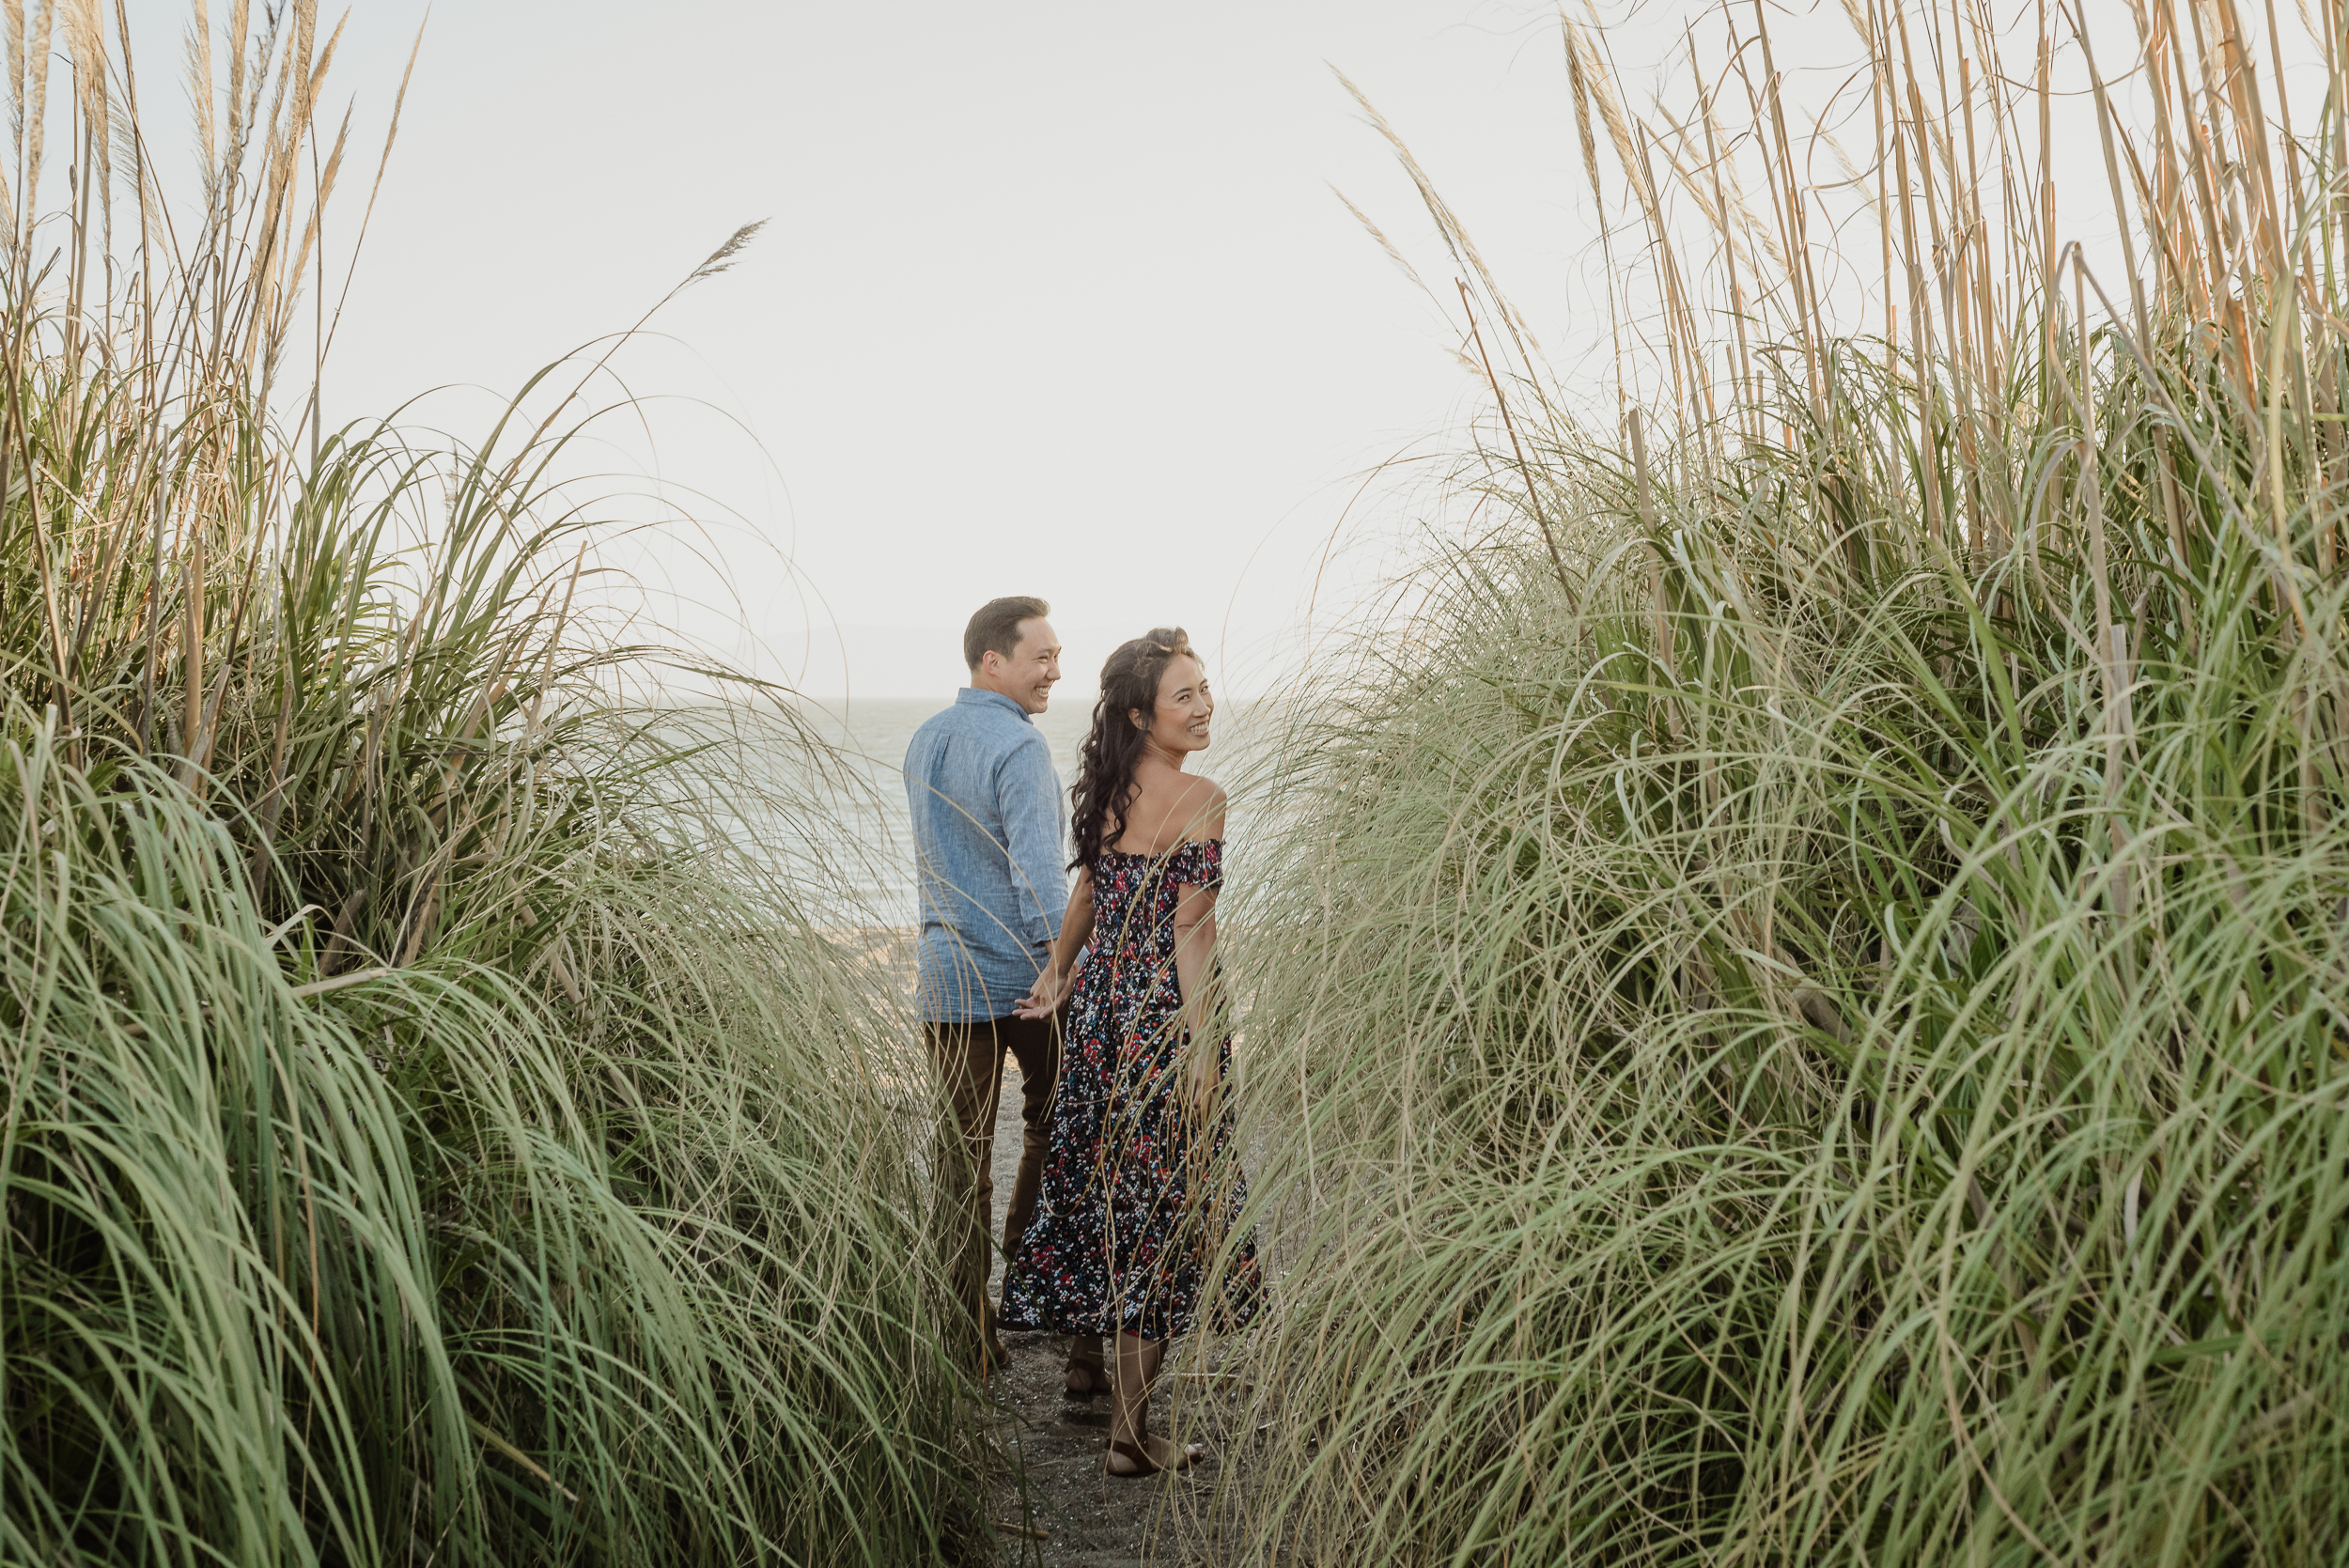 alameda-crown-memorial-state-beach-engagement-session-vivianchen-054.jpg